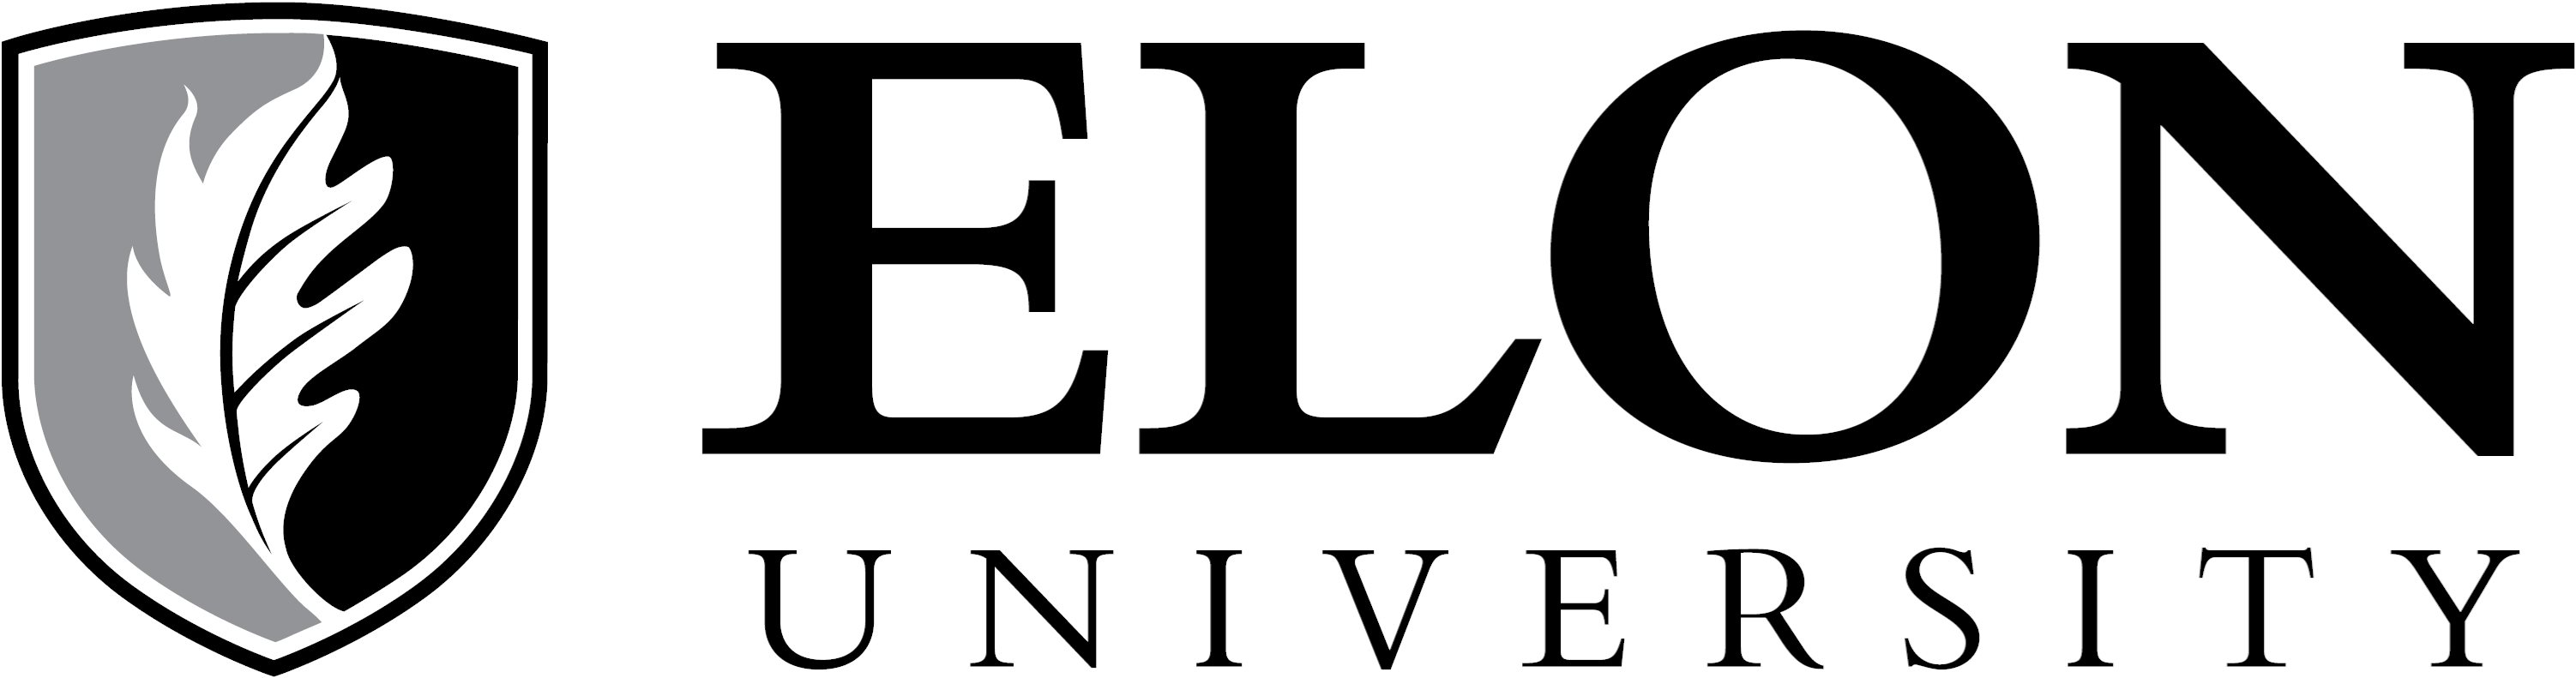 Elon University primary signature one-color example